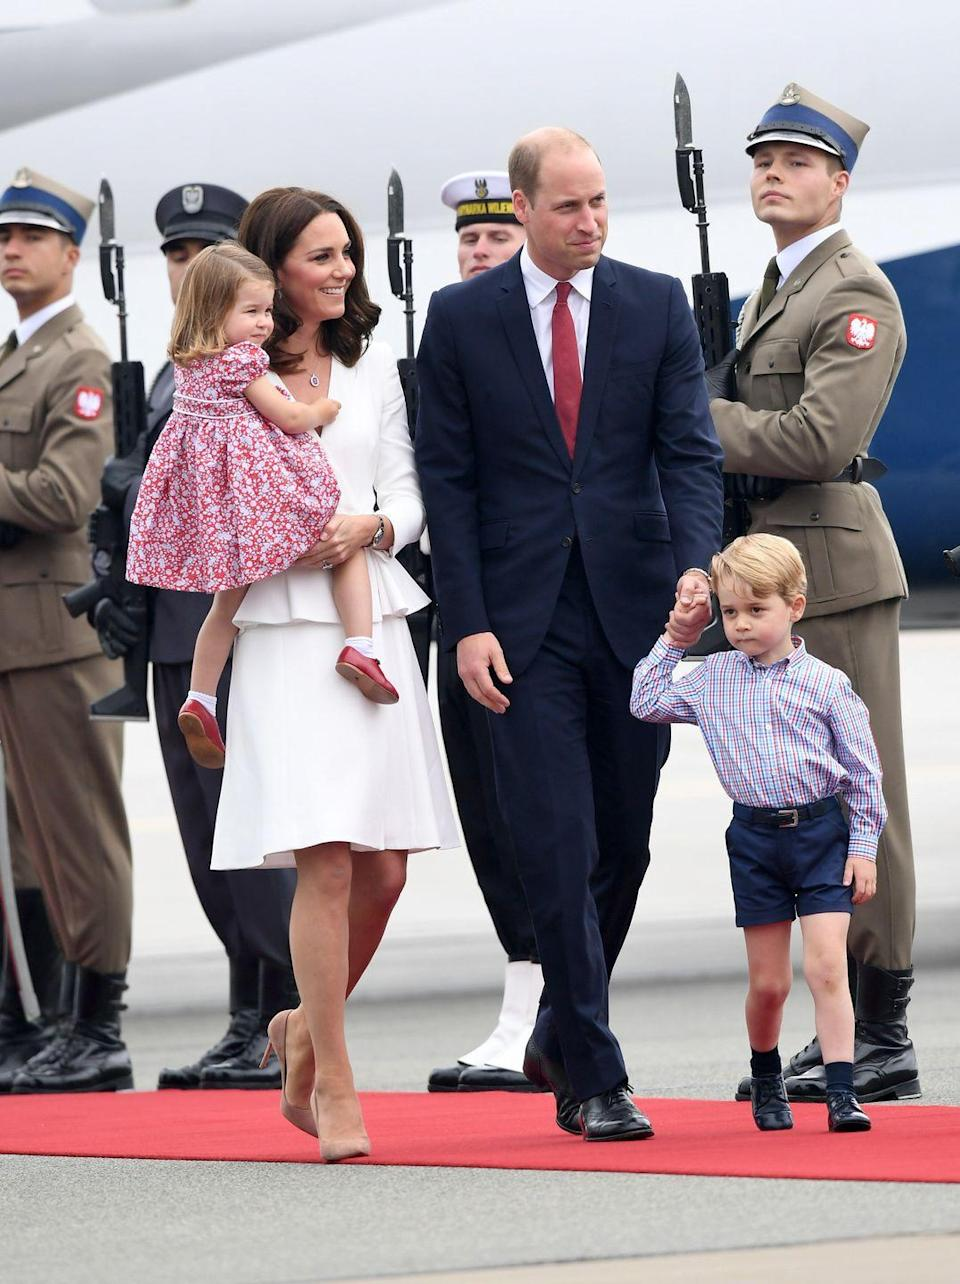 <p>The Duchess wore a white dress with a peplum as the royal family touched down in Poland to embark on the Royal Tour. She accessorized the look with nude pumps and a simple ruby necklace. </p>